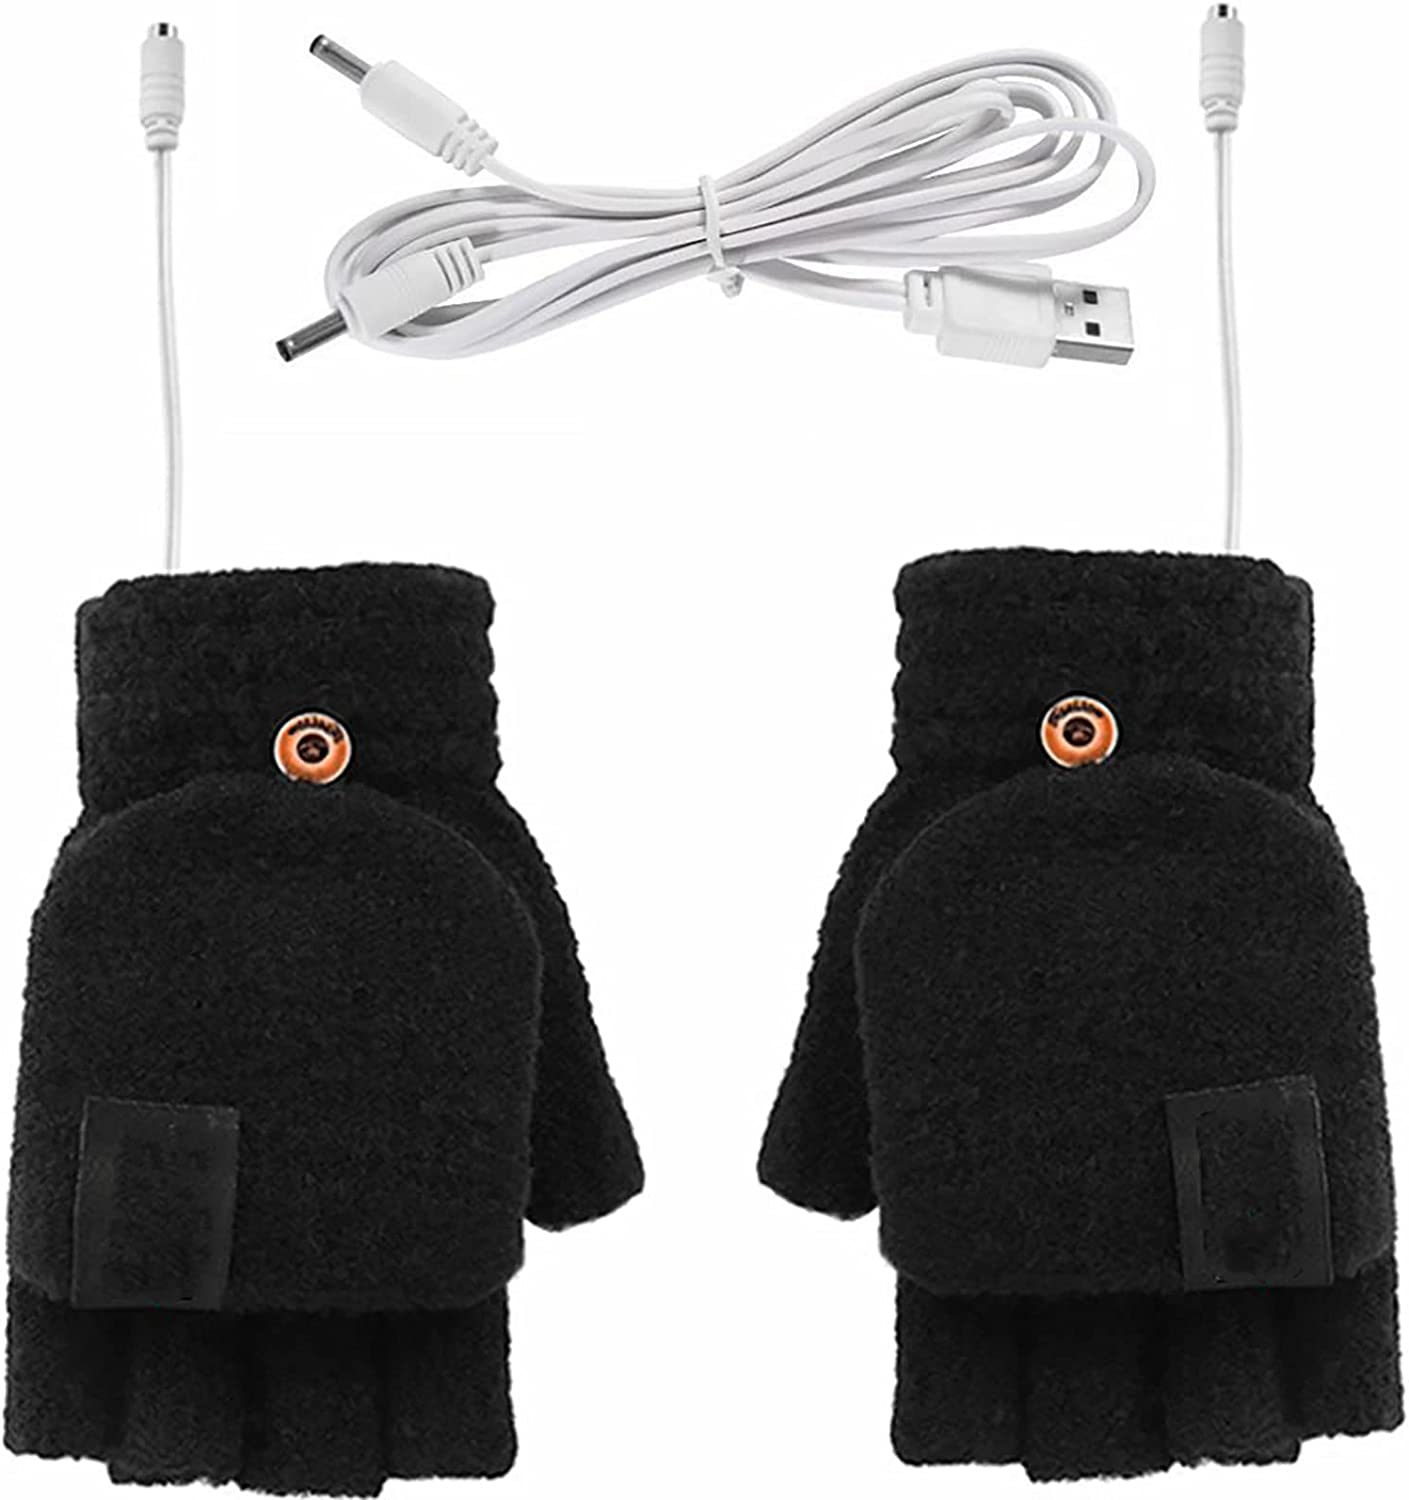 USB Heated Mittens, Winter Full& Half Finger USB Heating Warm Hot Hands Electric Heated Gloves, Knitted Laptop Gloves with Finger Cover for Typing, Fishing, Biking, Hiking